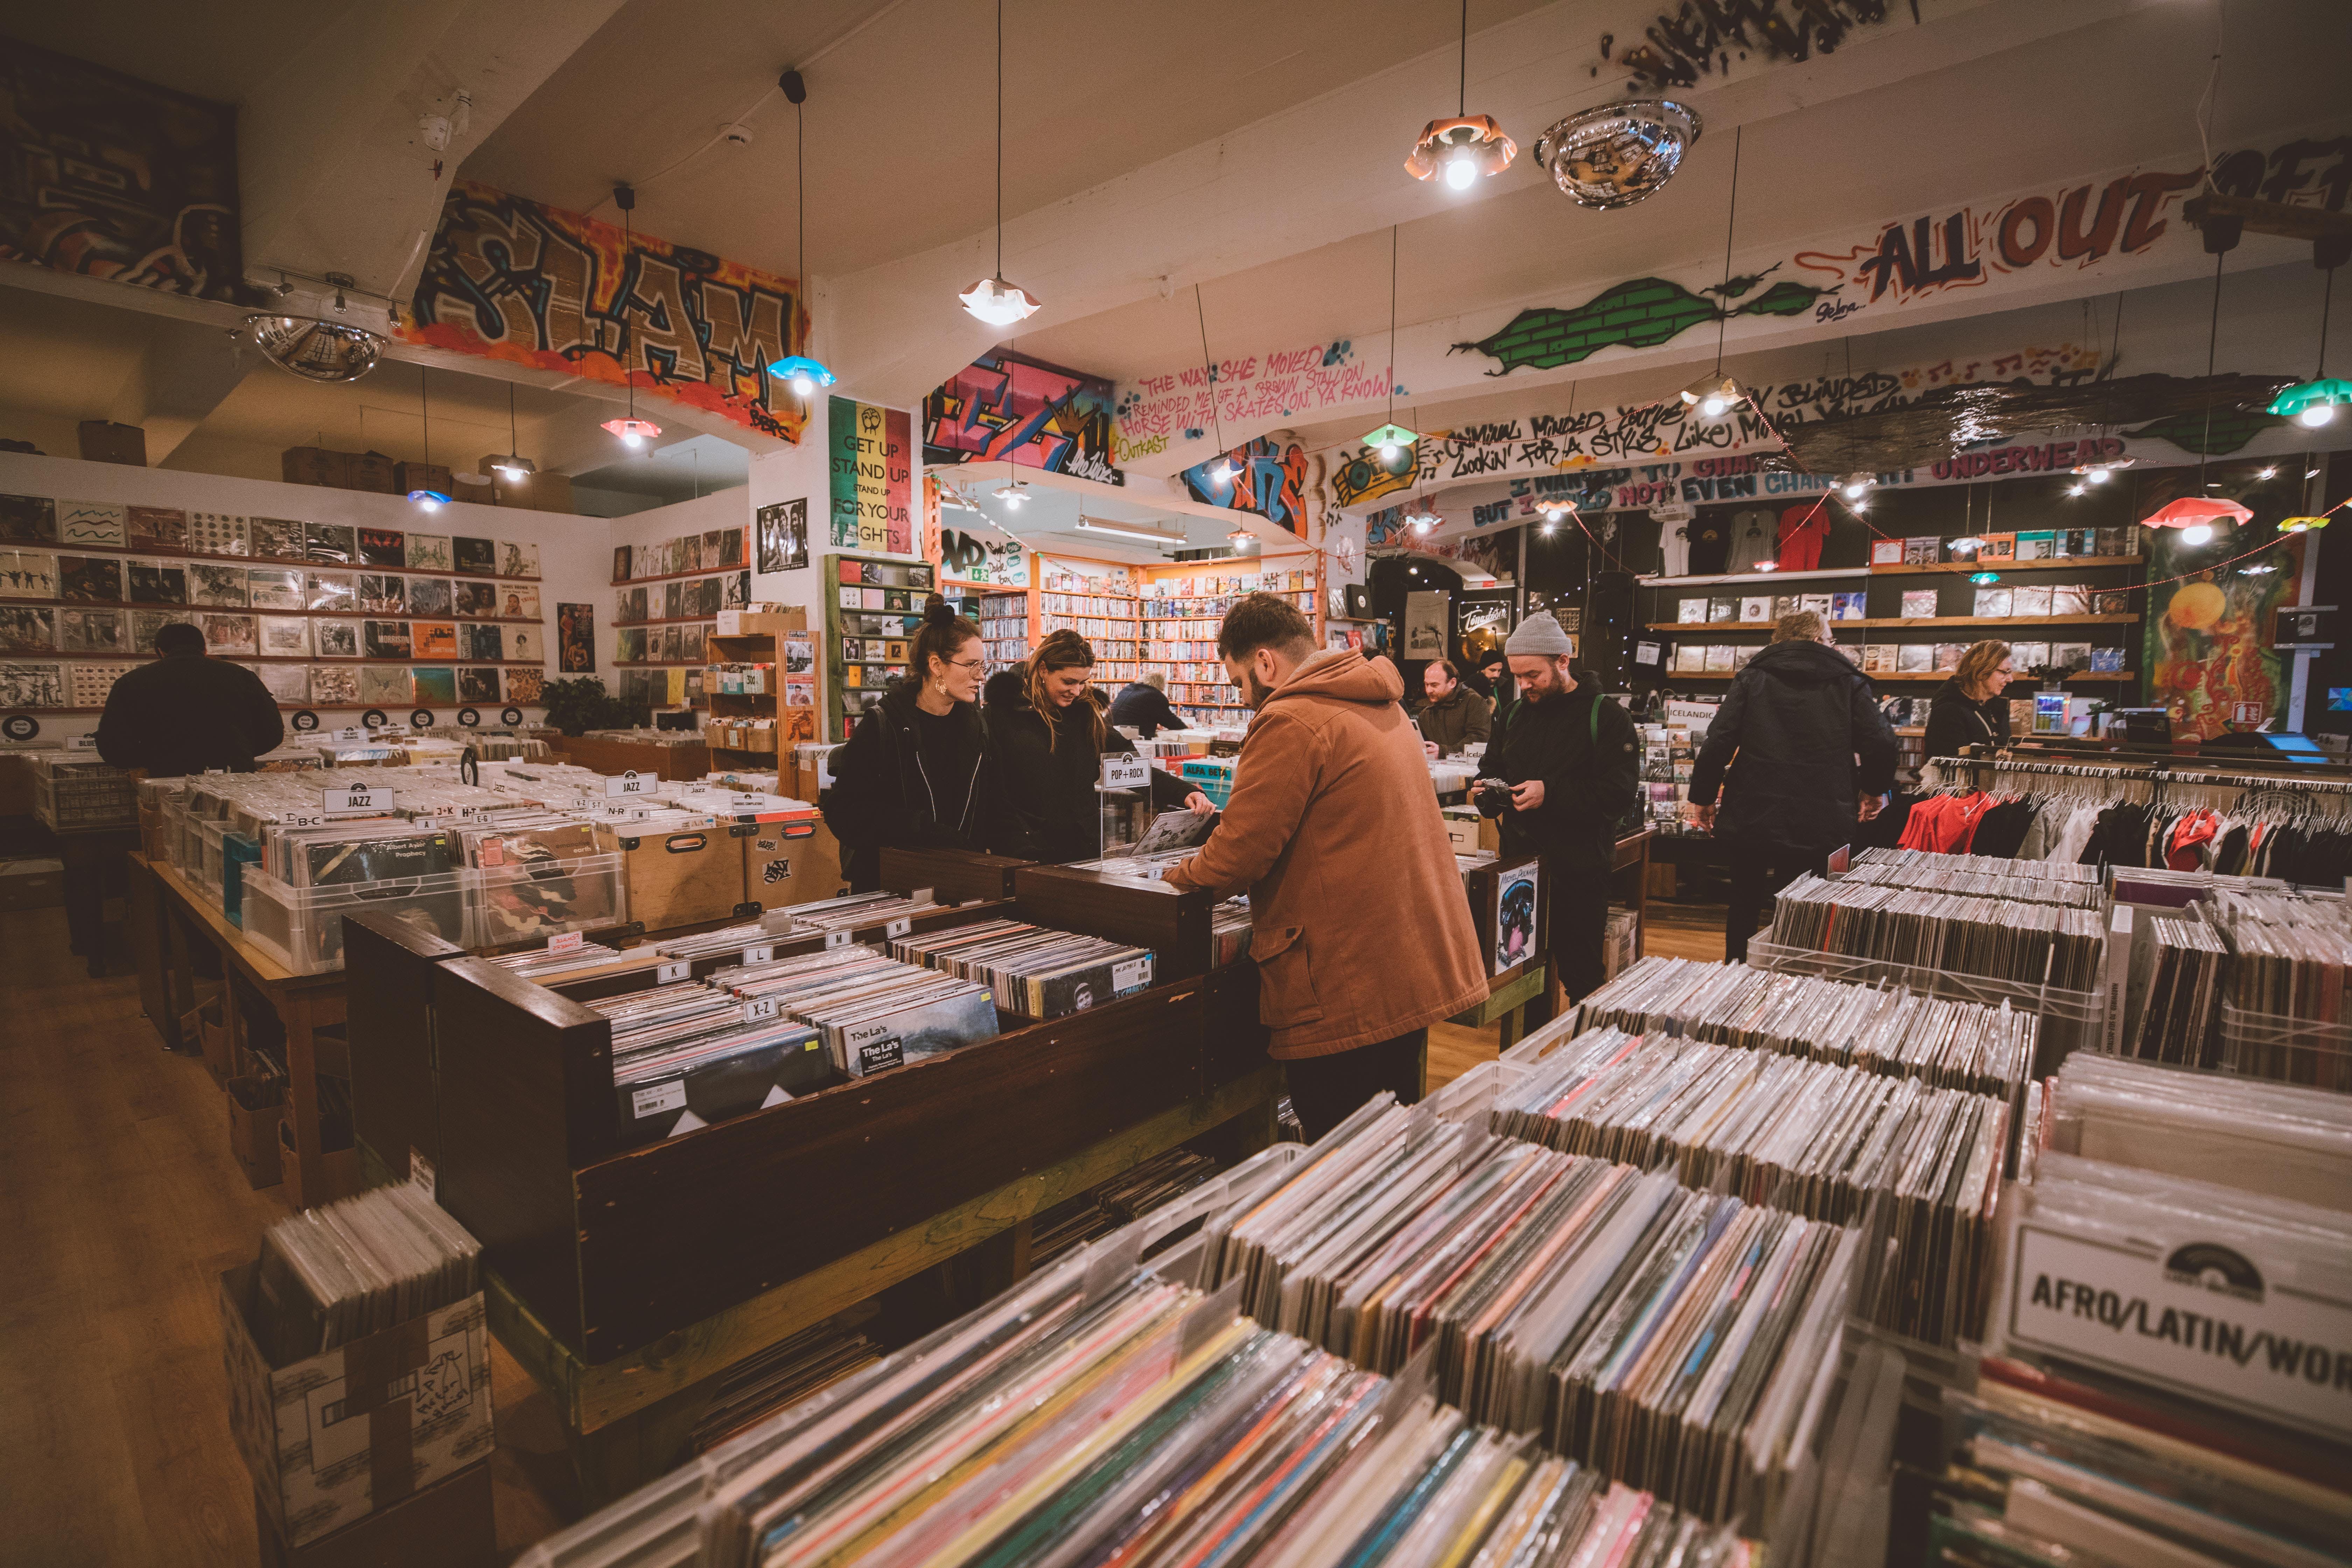 People browsing through records in a record store